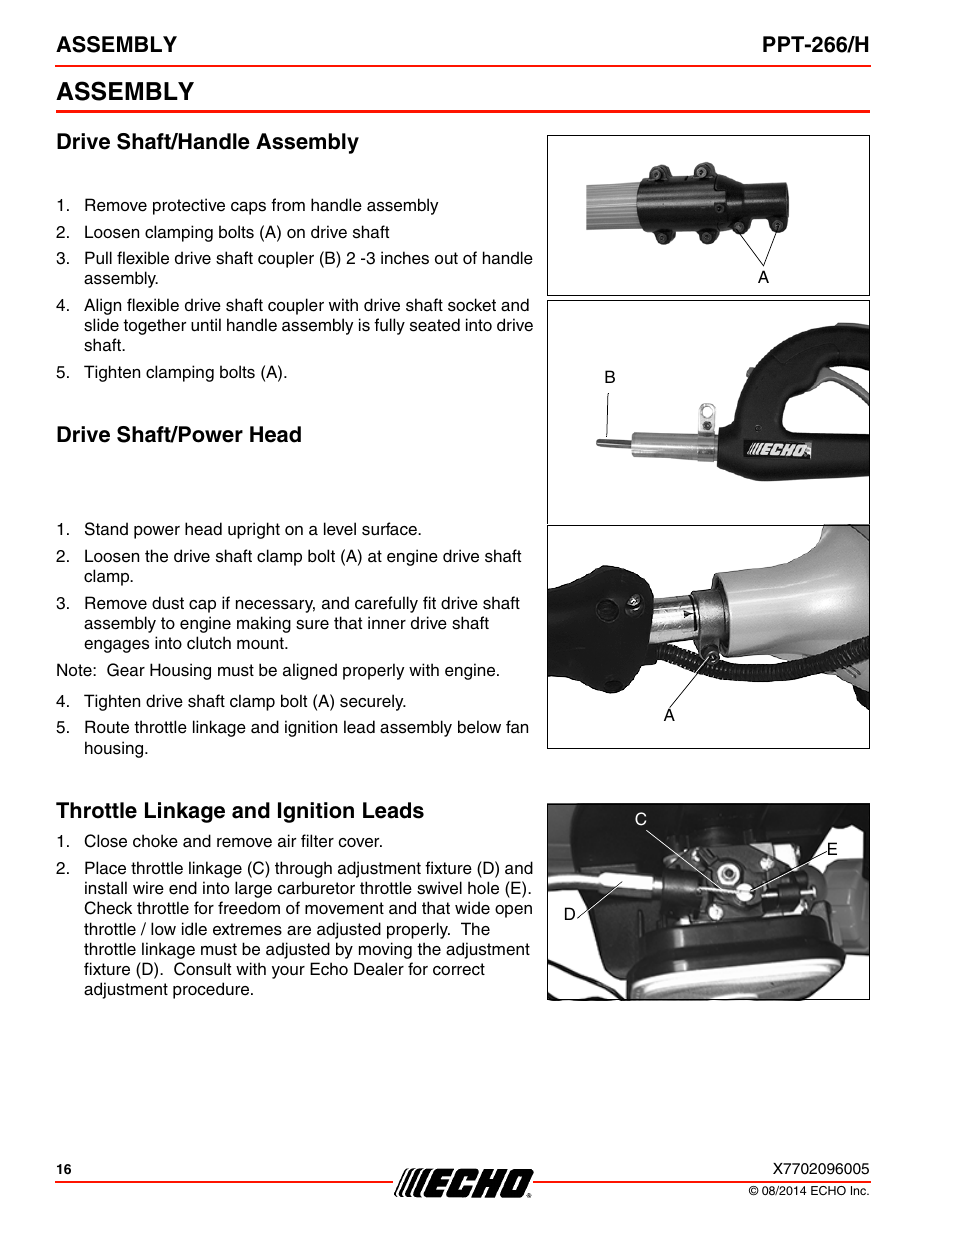 assembly drive shaft handle assembly drive shaft power head echo